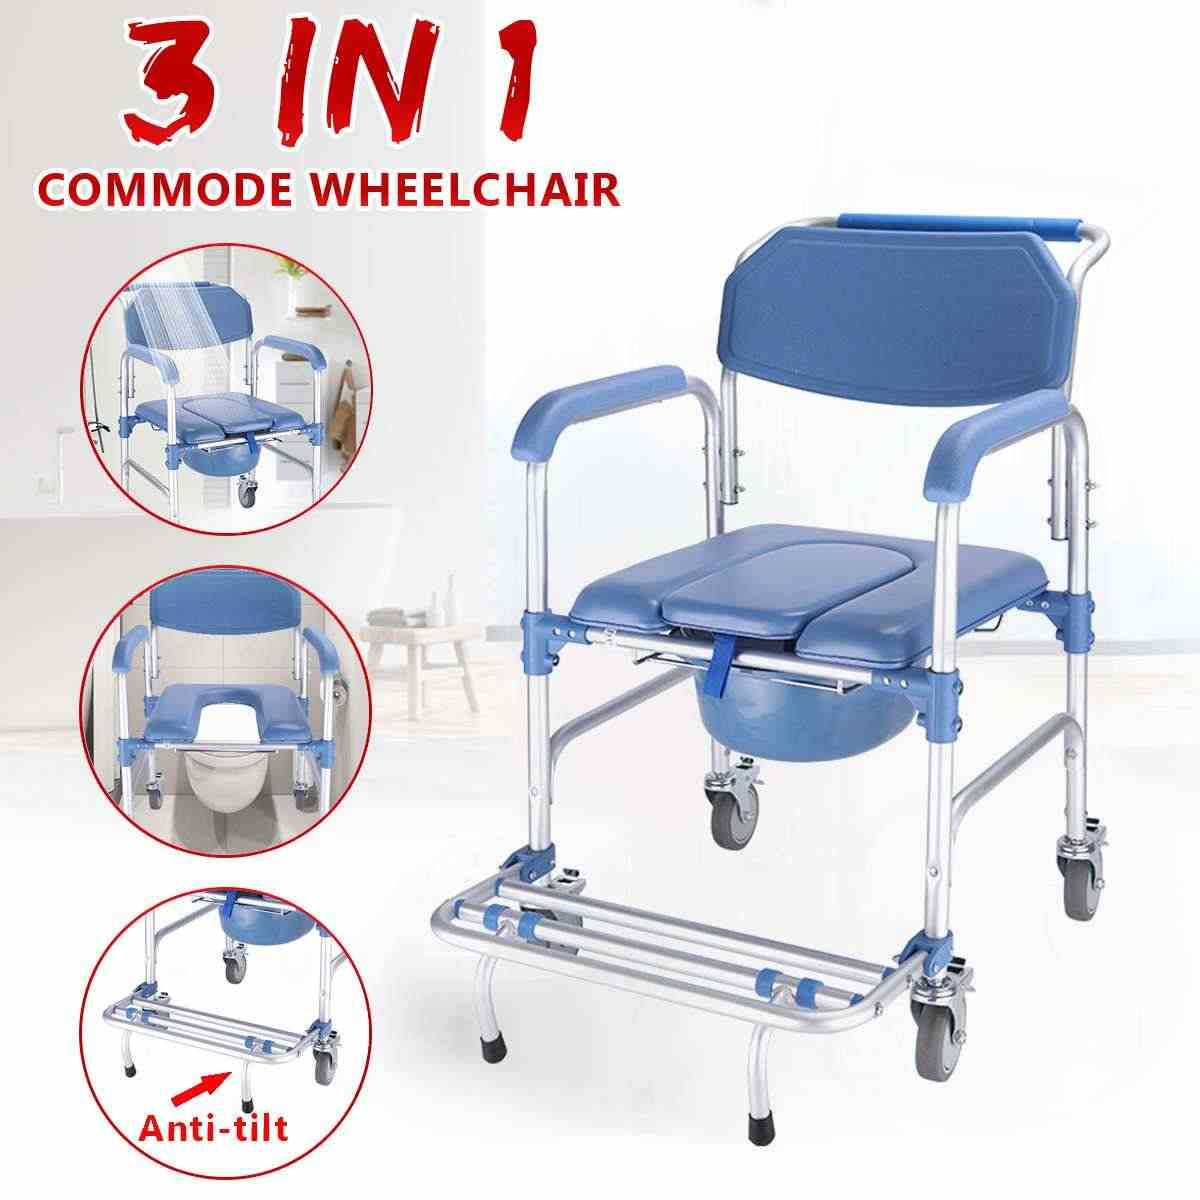 5 in 5 Commode Wheelchair Bedside Toilet & Shower Seat Bathroom